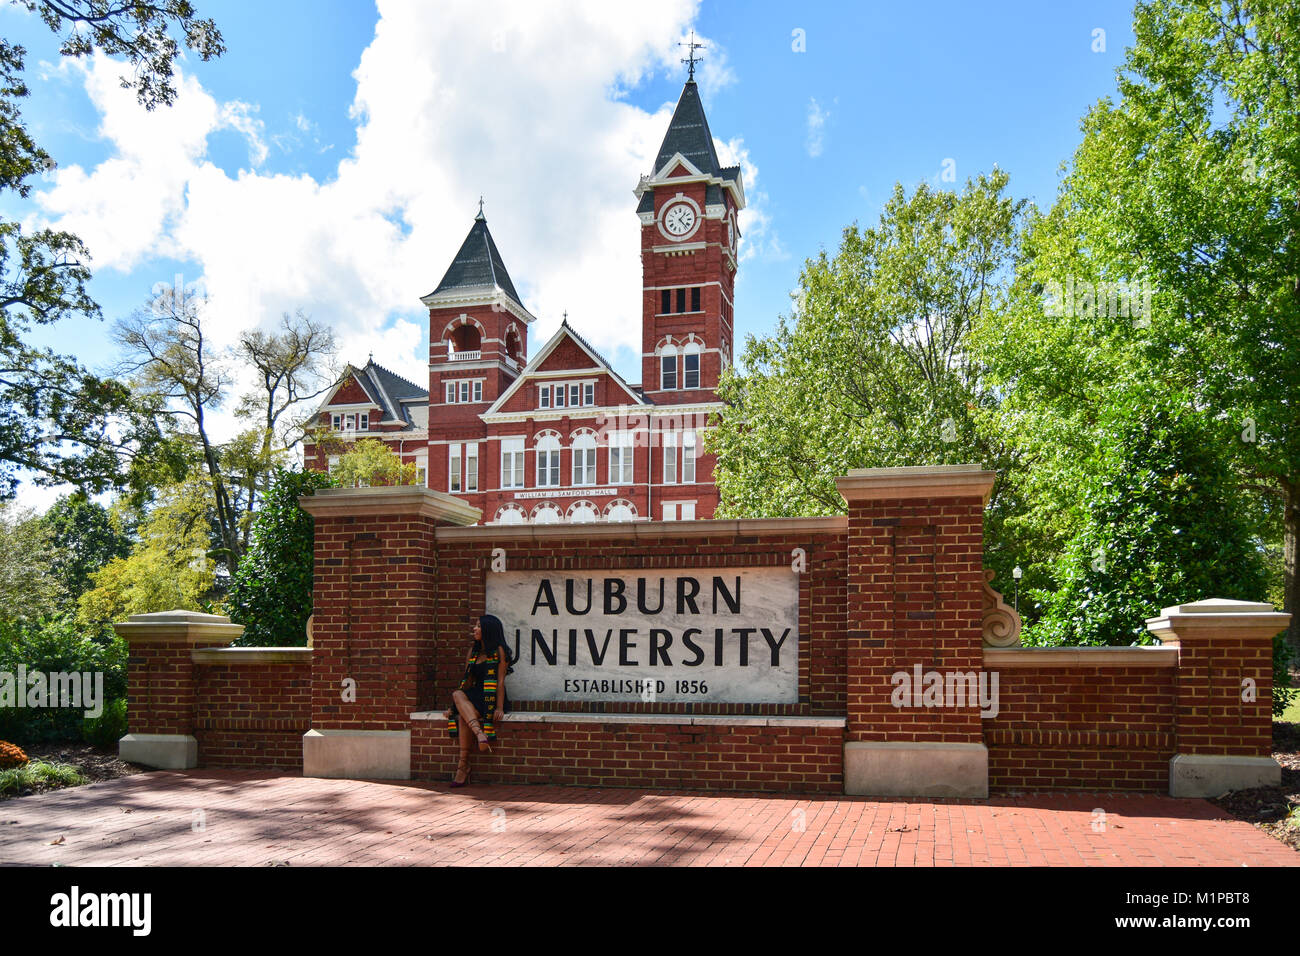 Auburn University Master of Real Estate Development